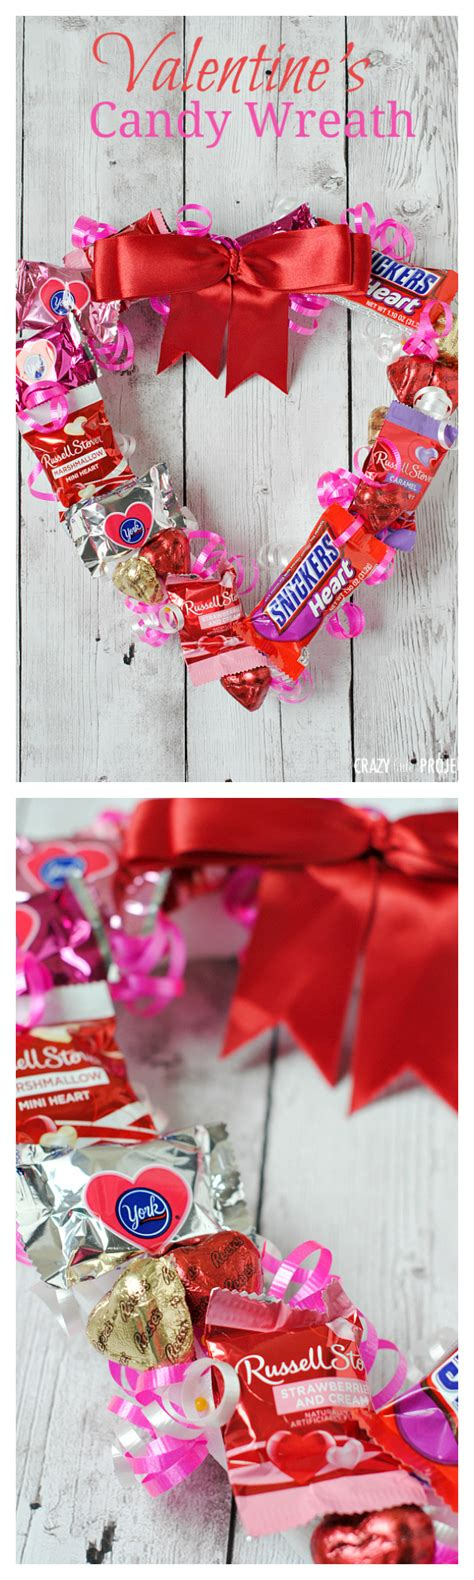 valentines day ideas for a you like s wreath projects